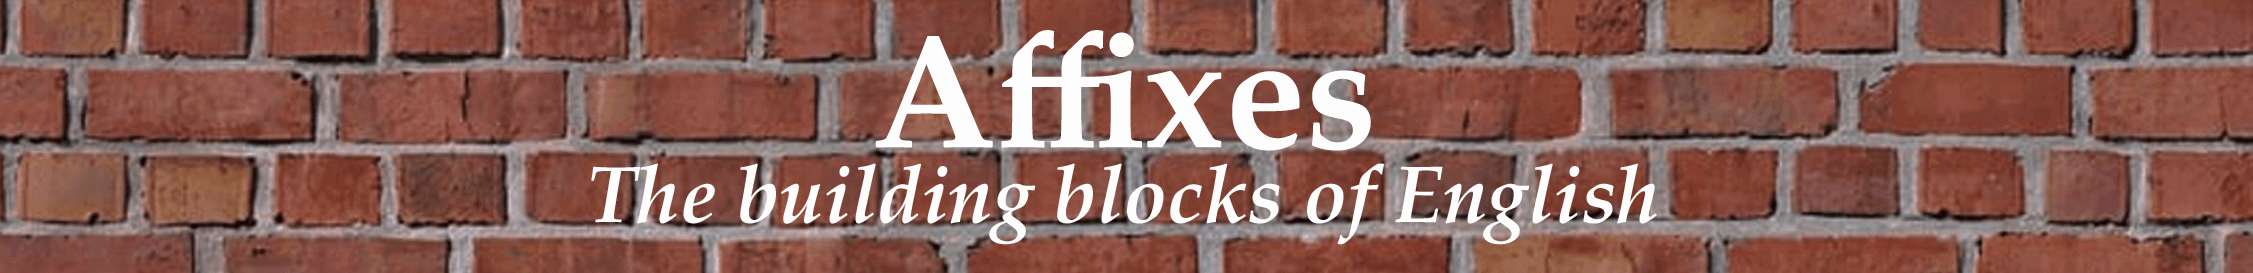 Header image of wall of bricks